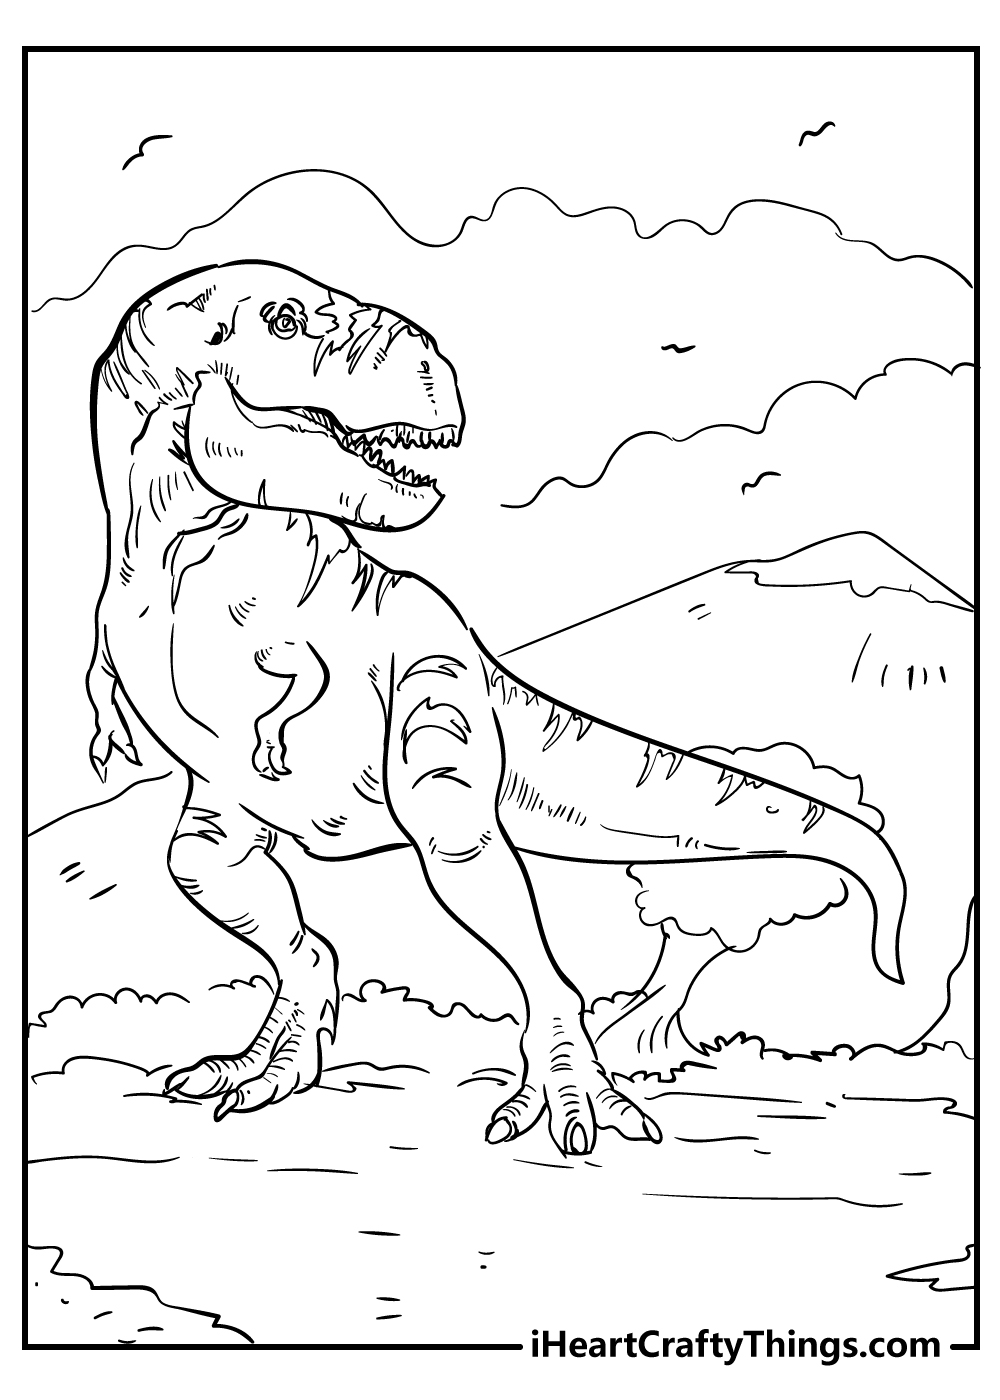 black and white t-rex coloring pages free printable